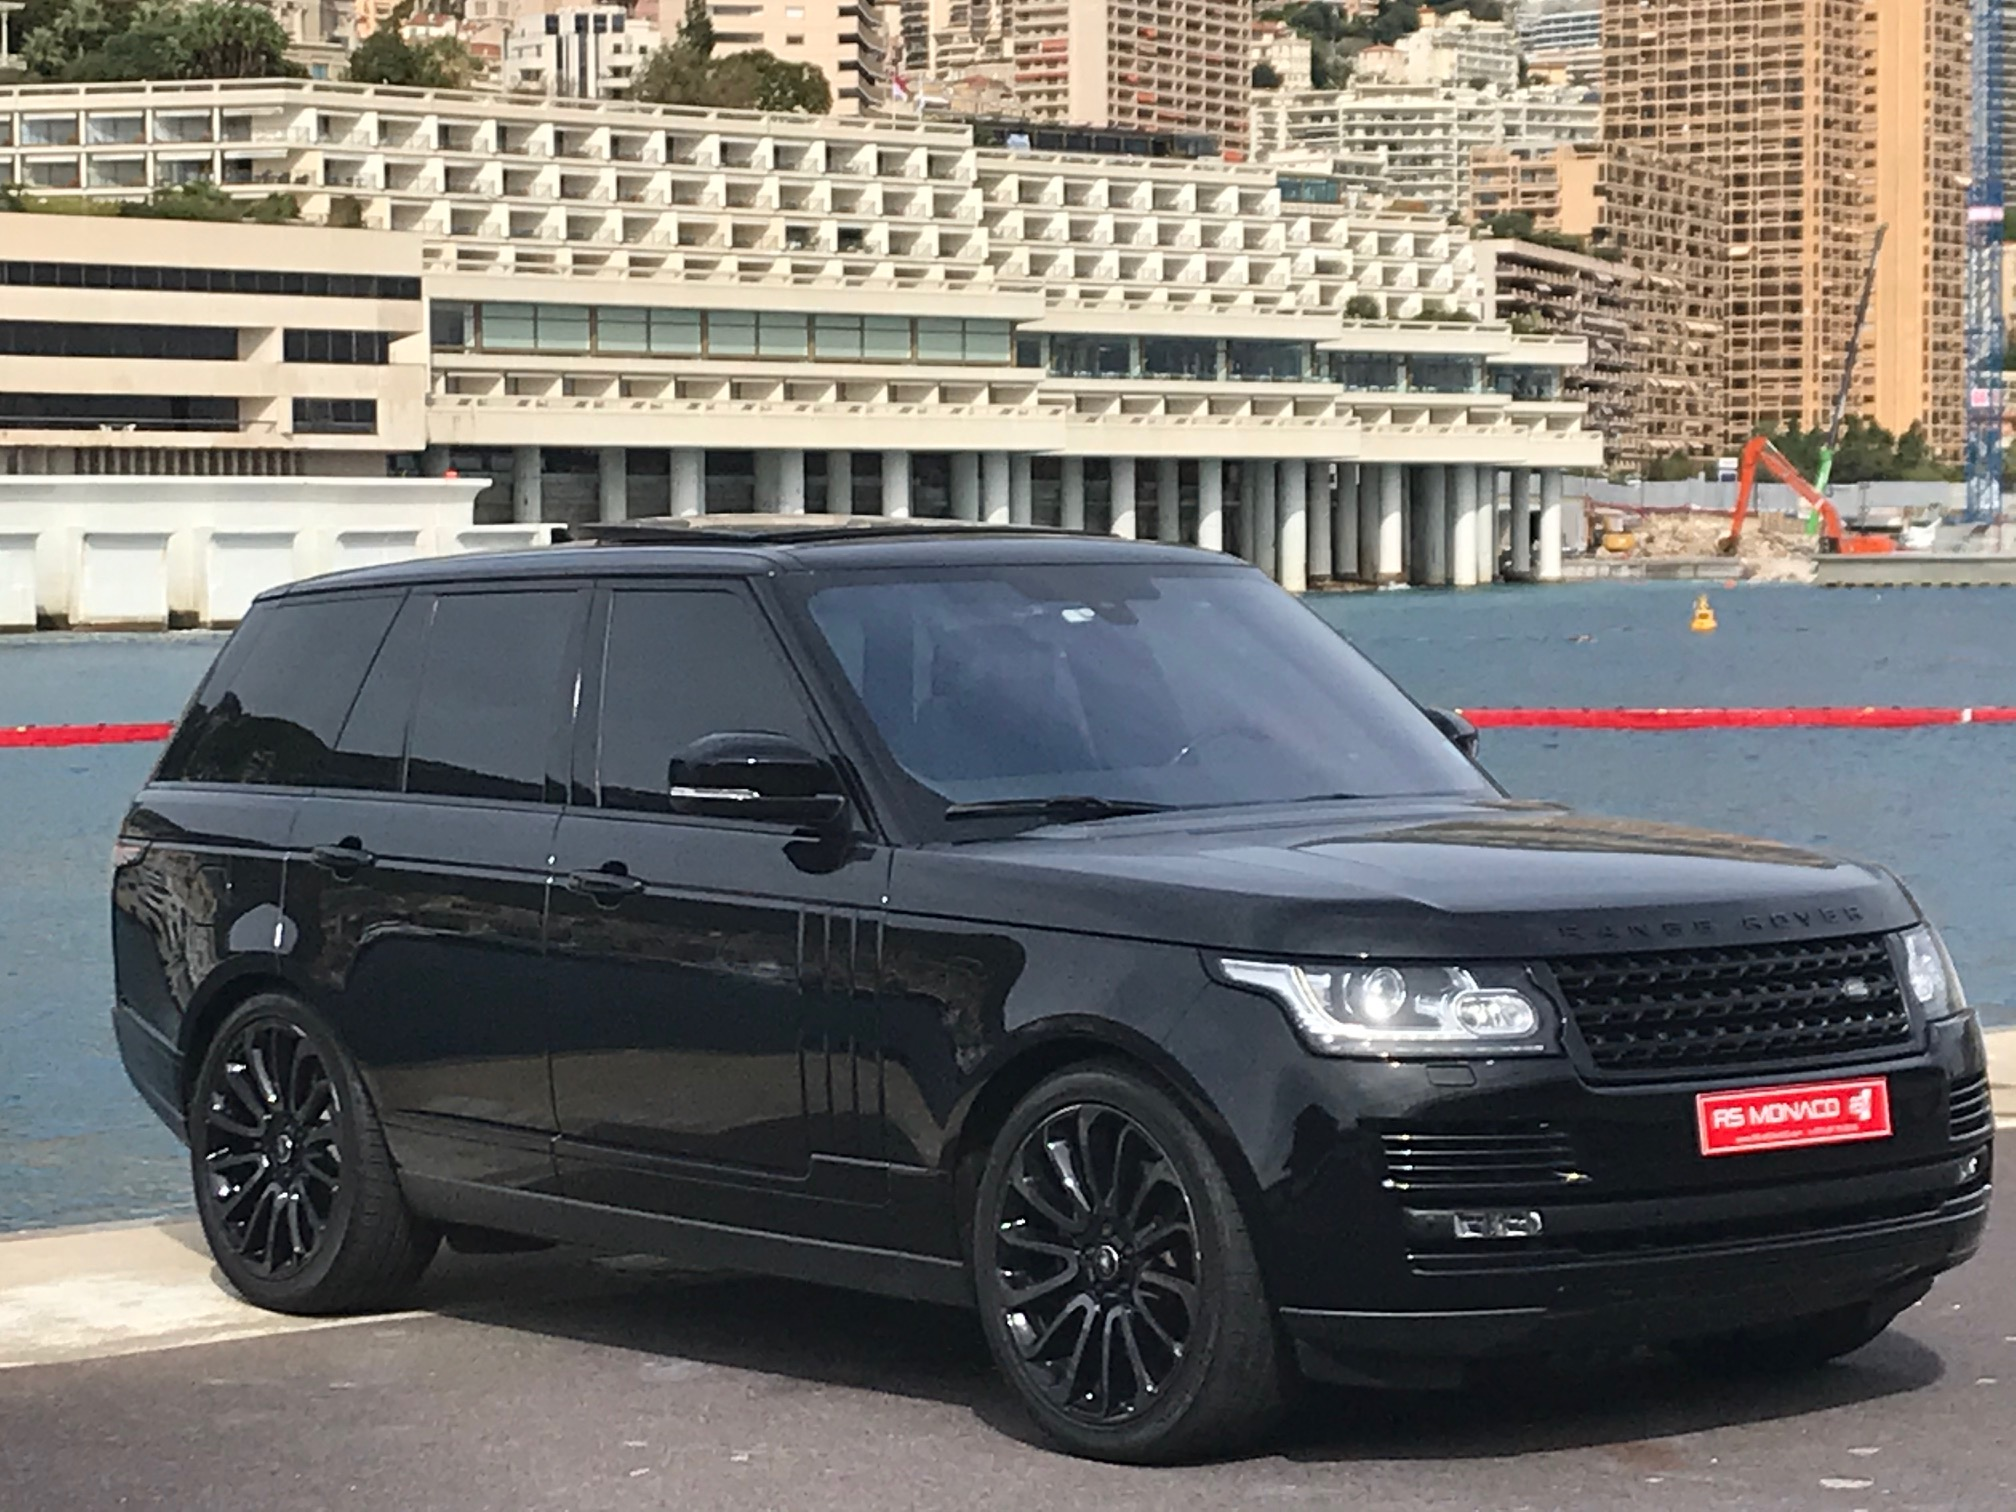 RANGE ROVER 5.0 V8 SUPERCHARGED VOGUE AUTOBIOGRAPHY